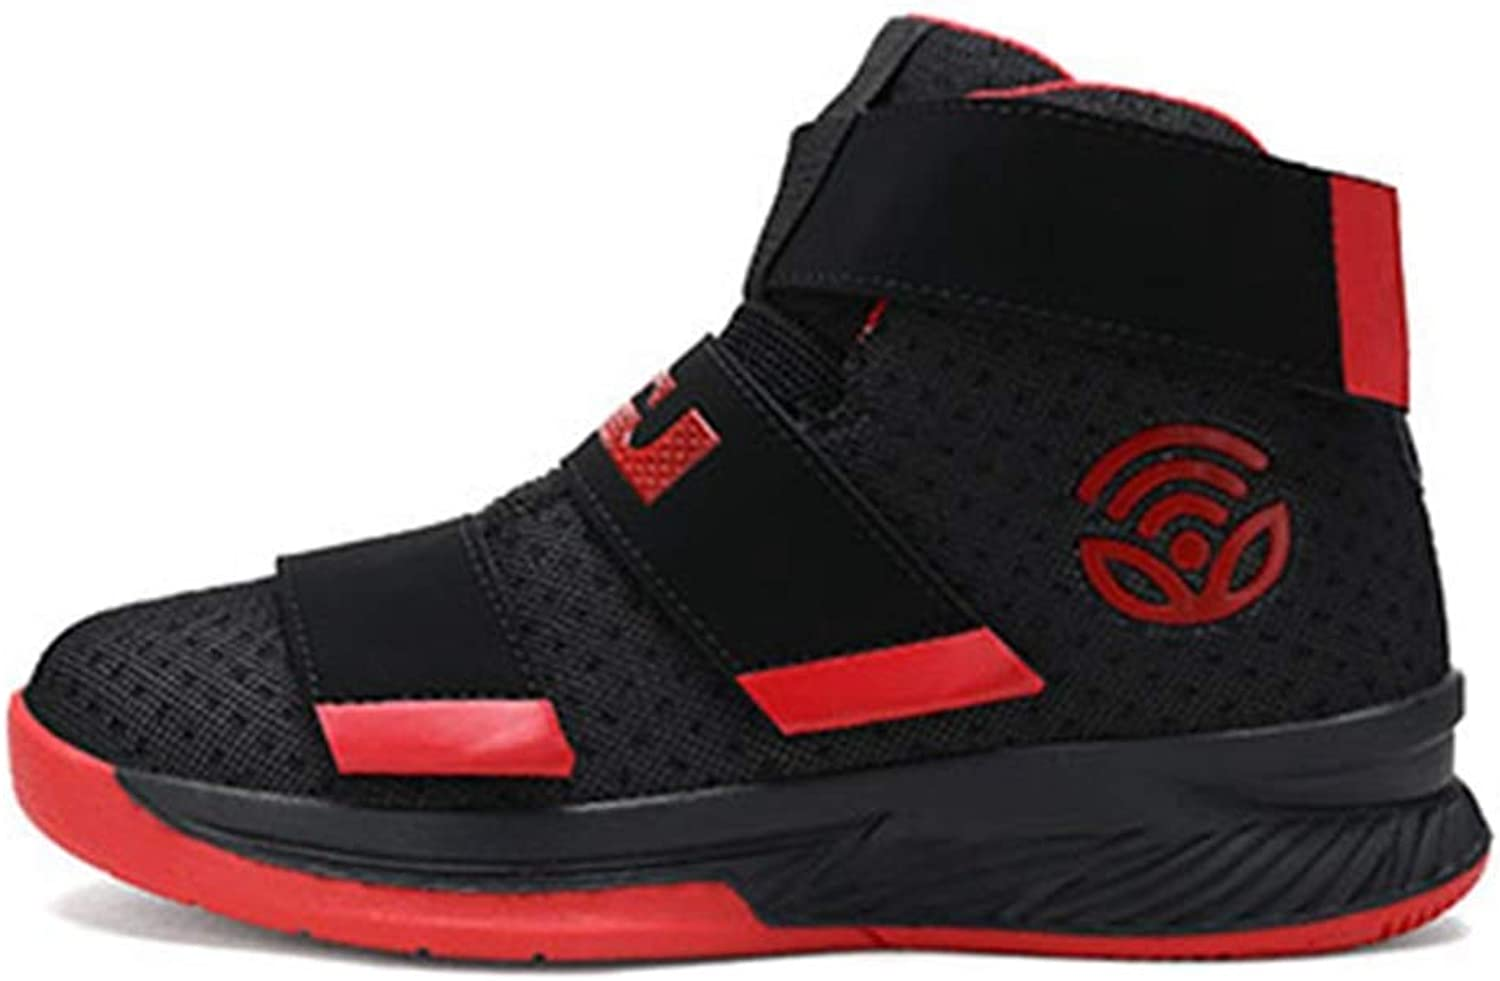 ZHRUI Men Basketball shoes High Top Sport Air Mesh Breathable Cushion Sneakers Outdoor Athletic Ankle Male Boots Trainers (color   Black red, Size   7=41 EU)